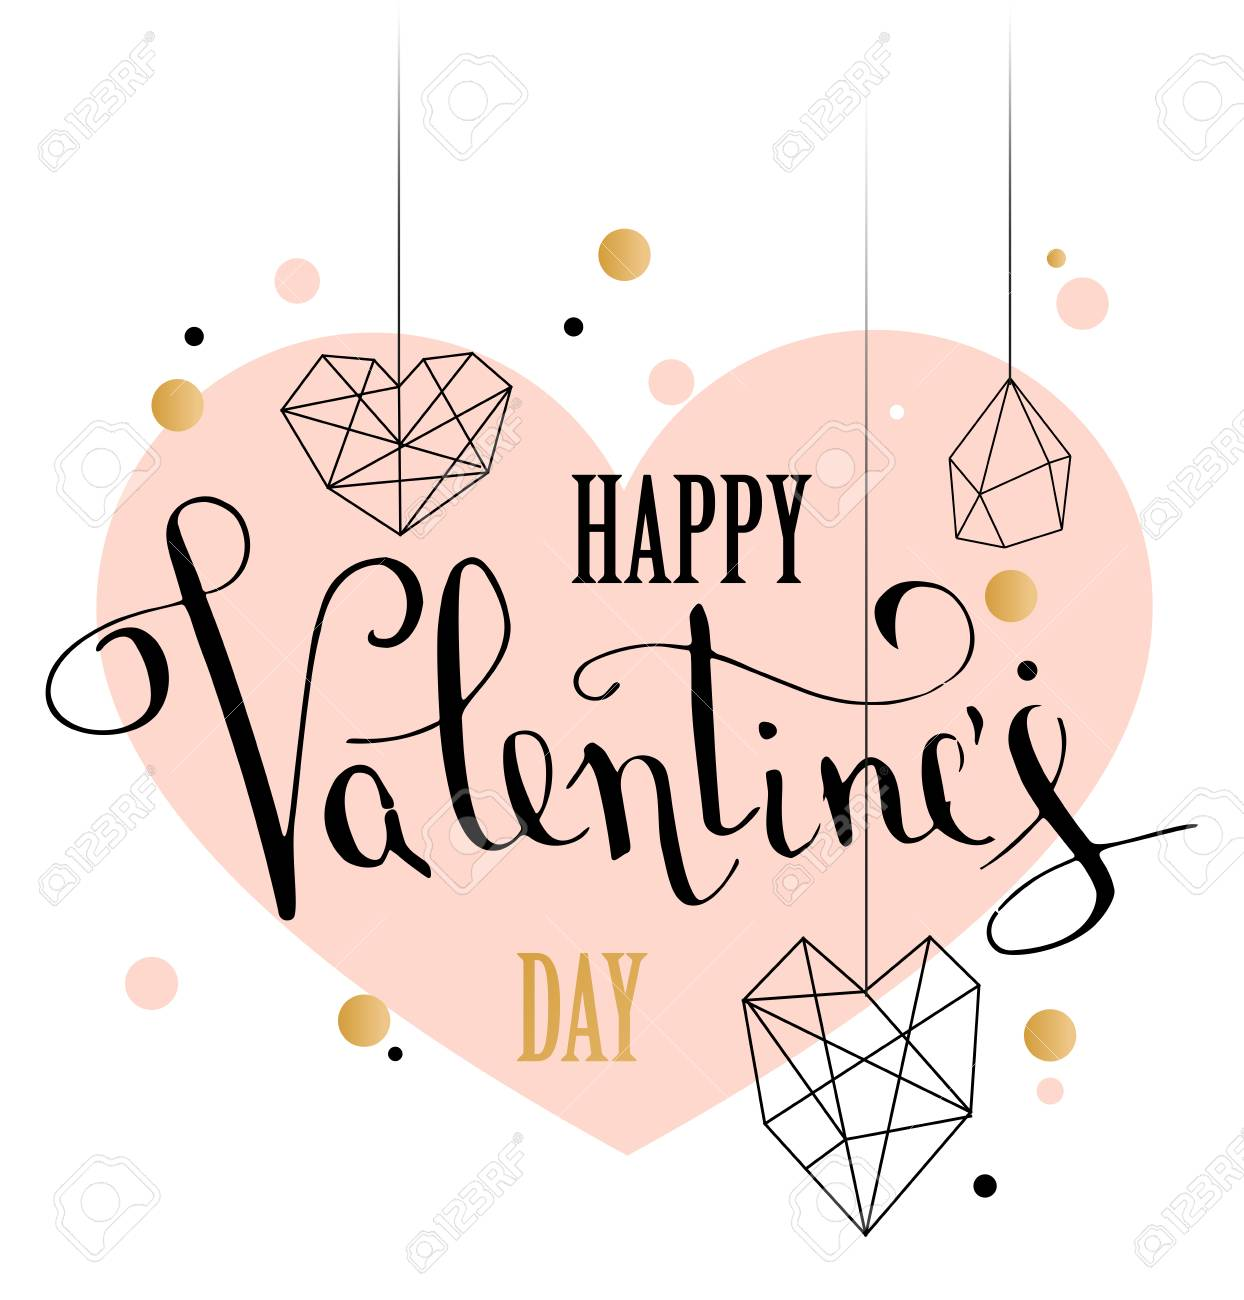 Happy valentines day greeting card royalty free cliparts vectors happy valentines day greeting card stock vector 88934621 kristyandbryce Image collections